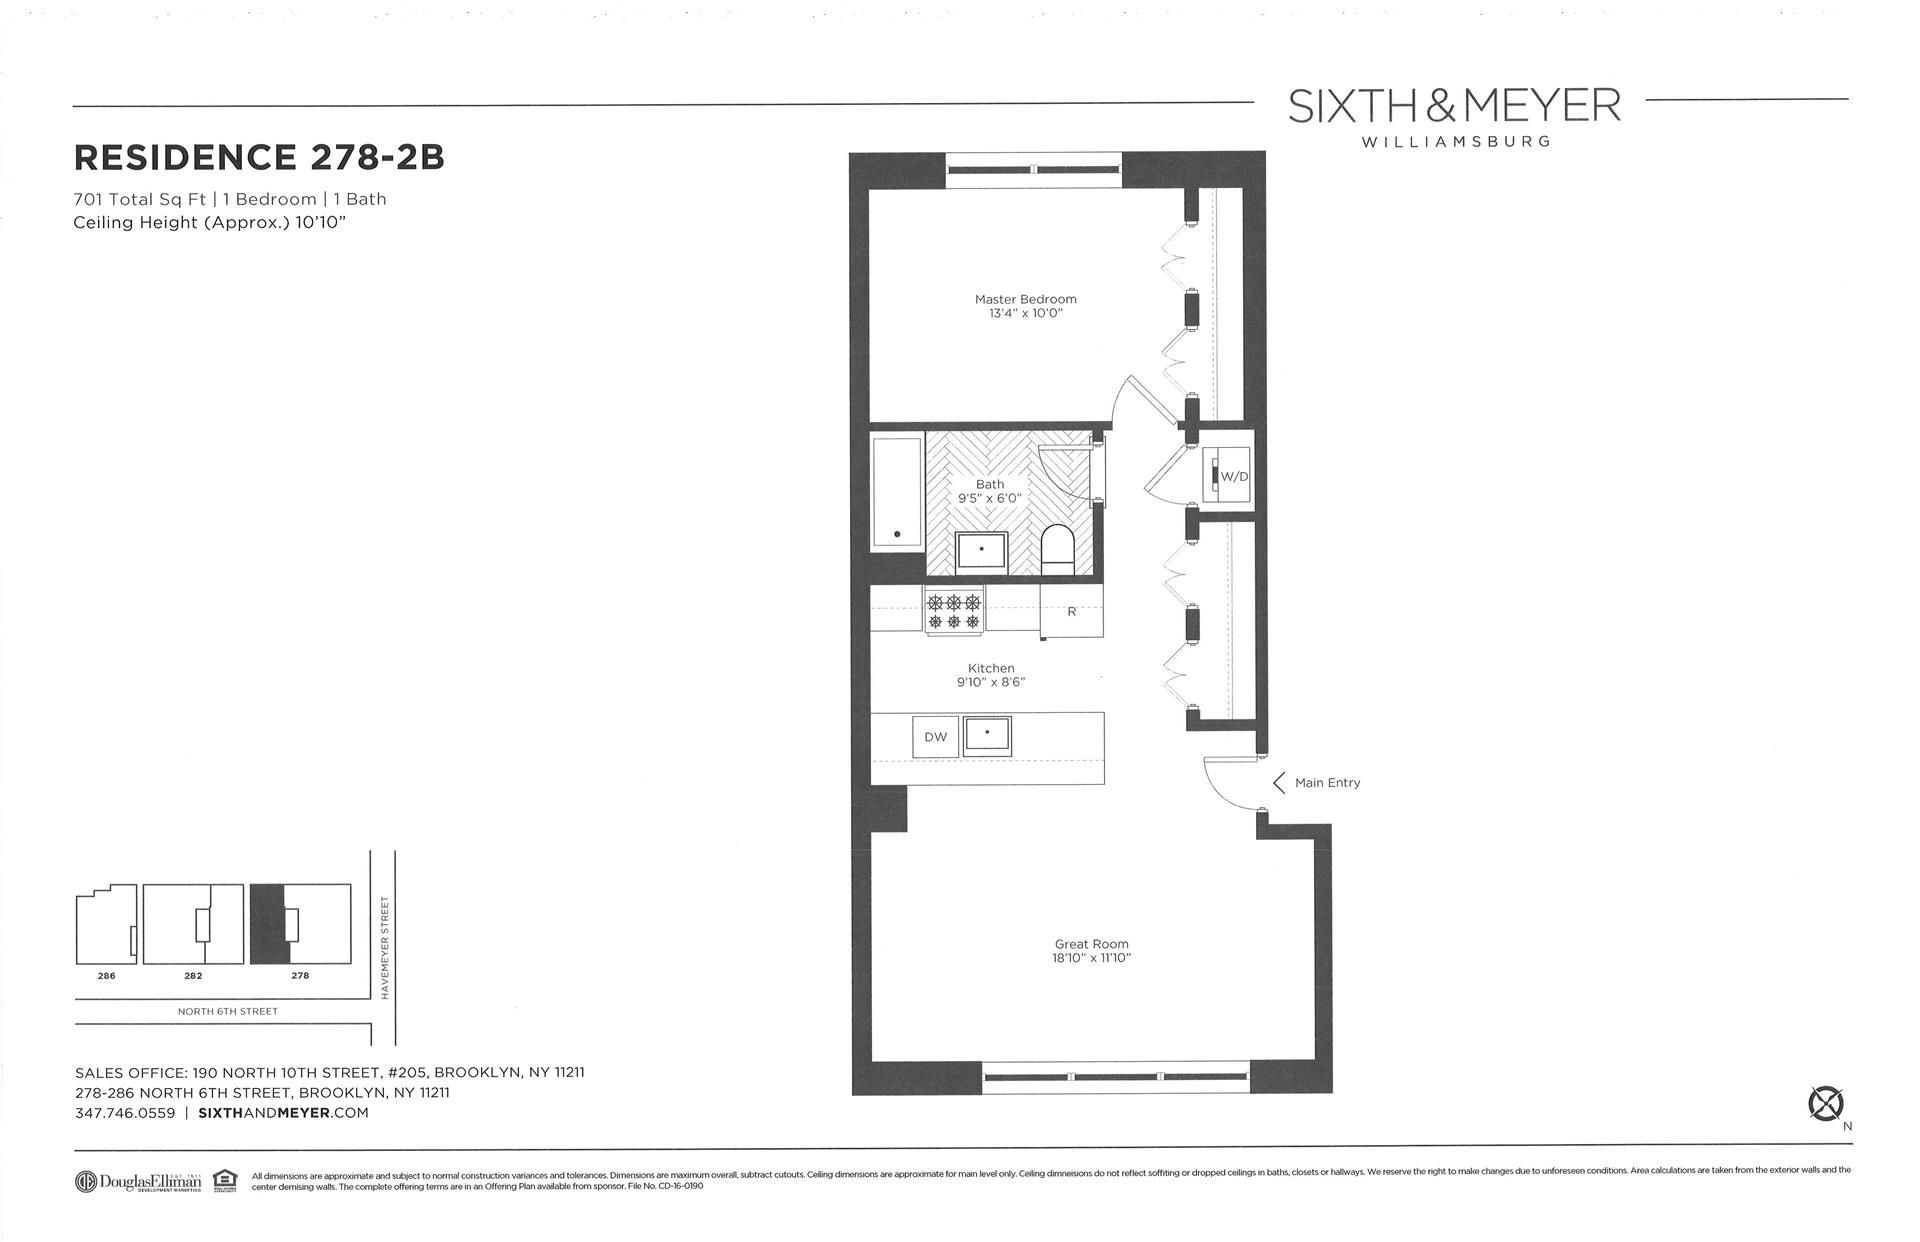 Floor plan of Sixth & Meyer, 278-286 North 6th St, 278/2B - Williamsburg, New York